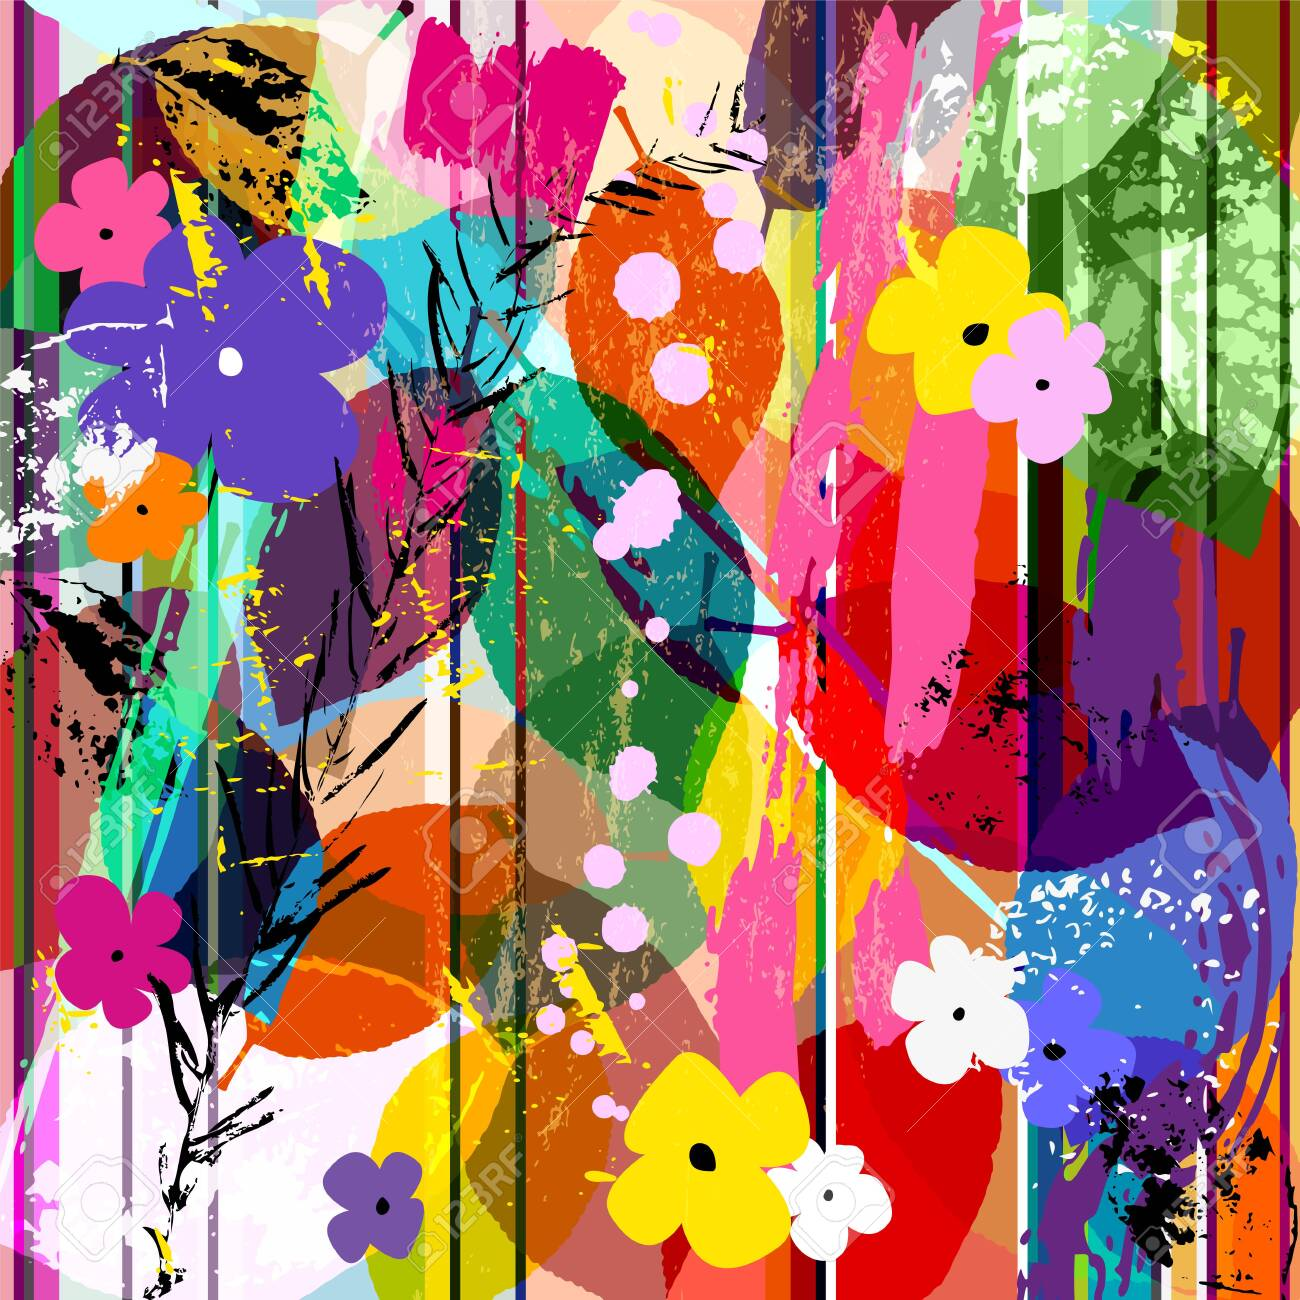 abstract background composition with little flowers, strokes, splashes and leaves - 153687006